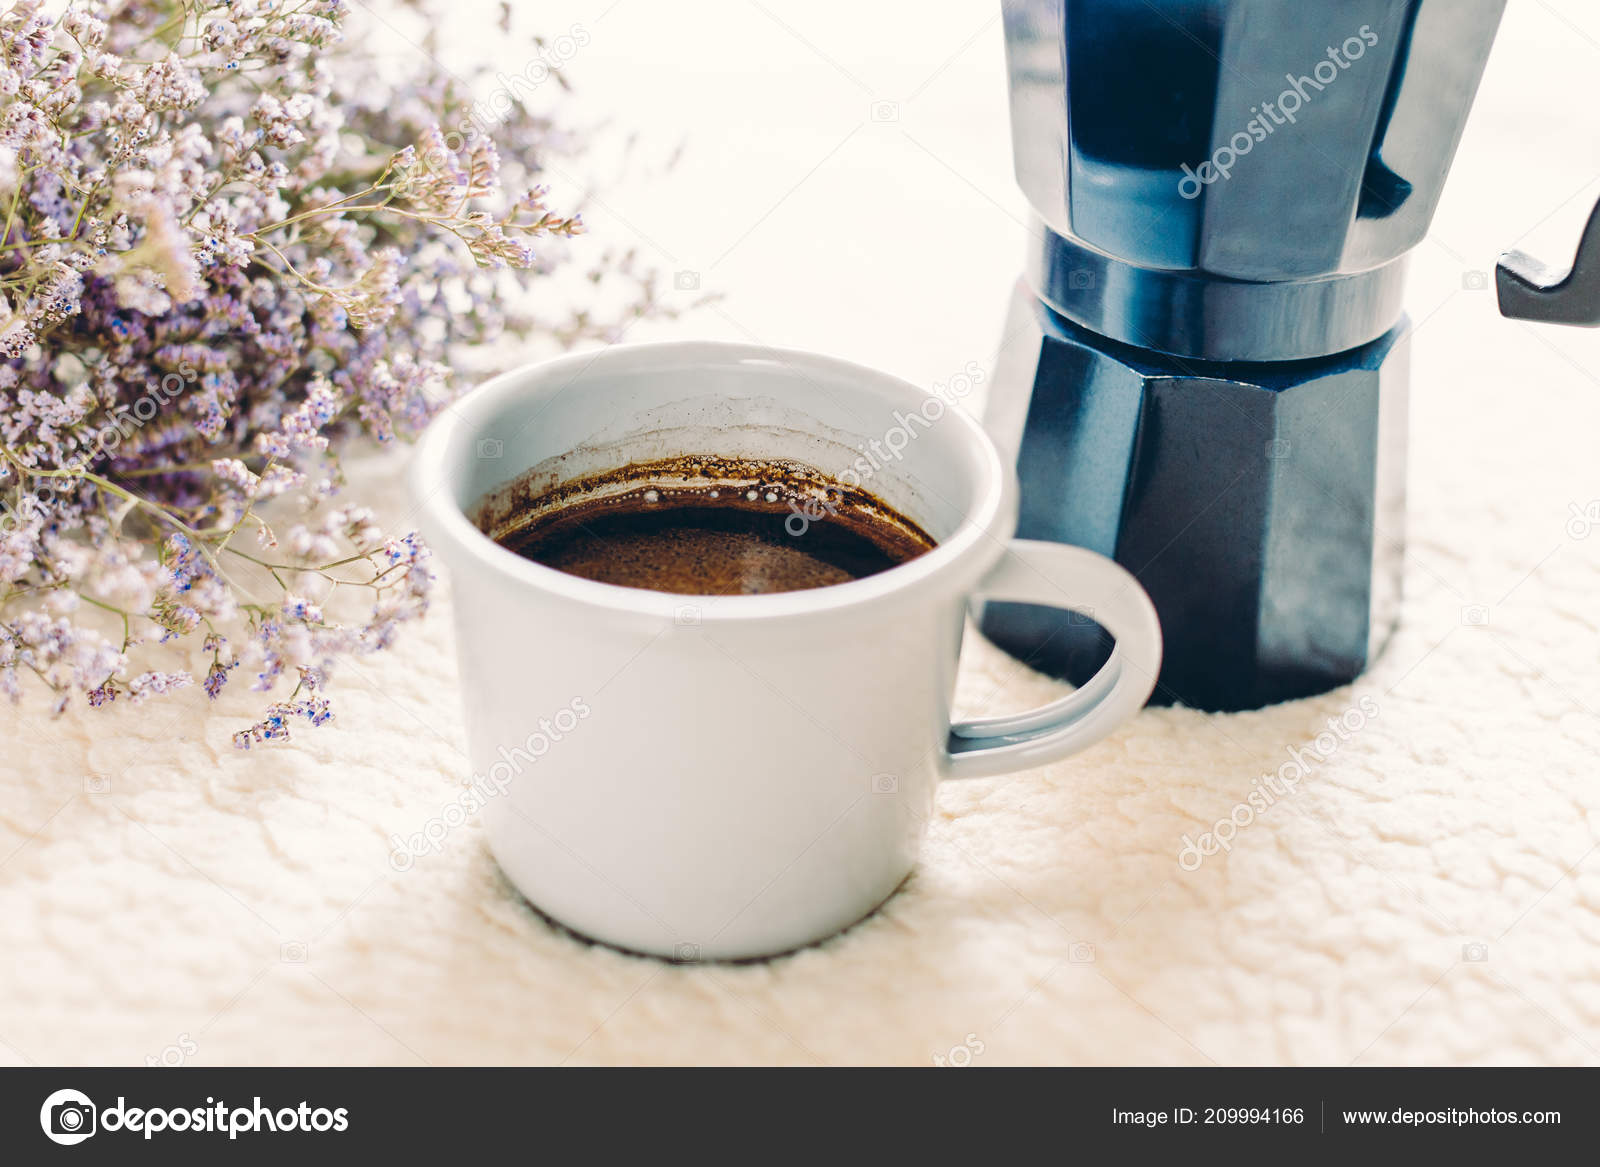 Coffee Mug Blue Geyser Pot White Cover Cosiness Stock Photo Kopi Wihte And On By Yakovlevadaria